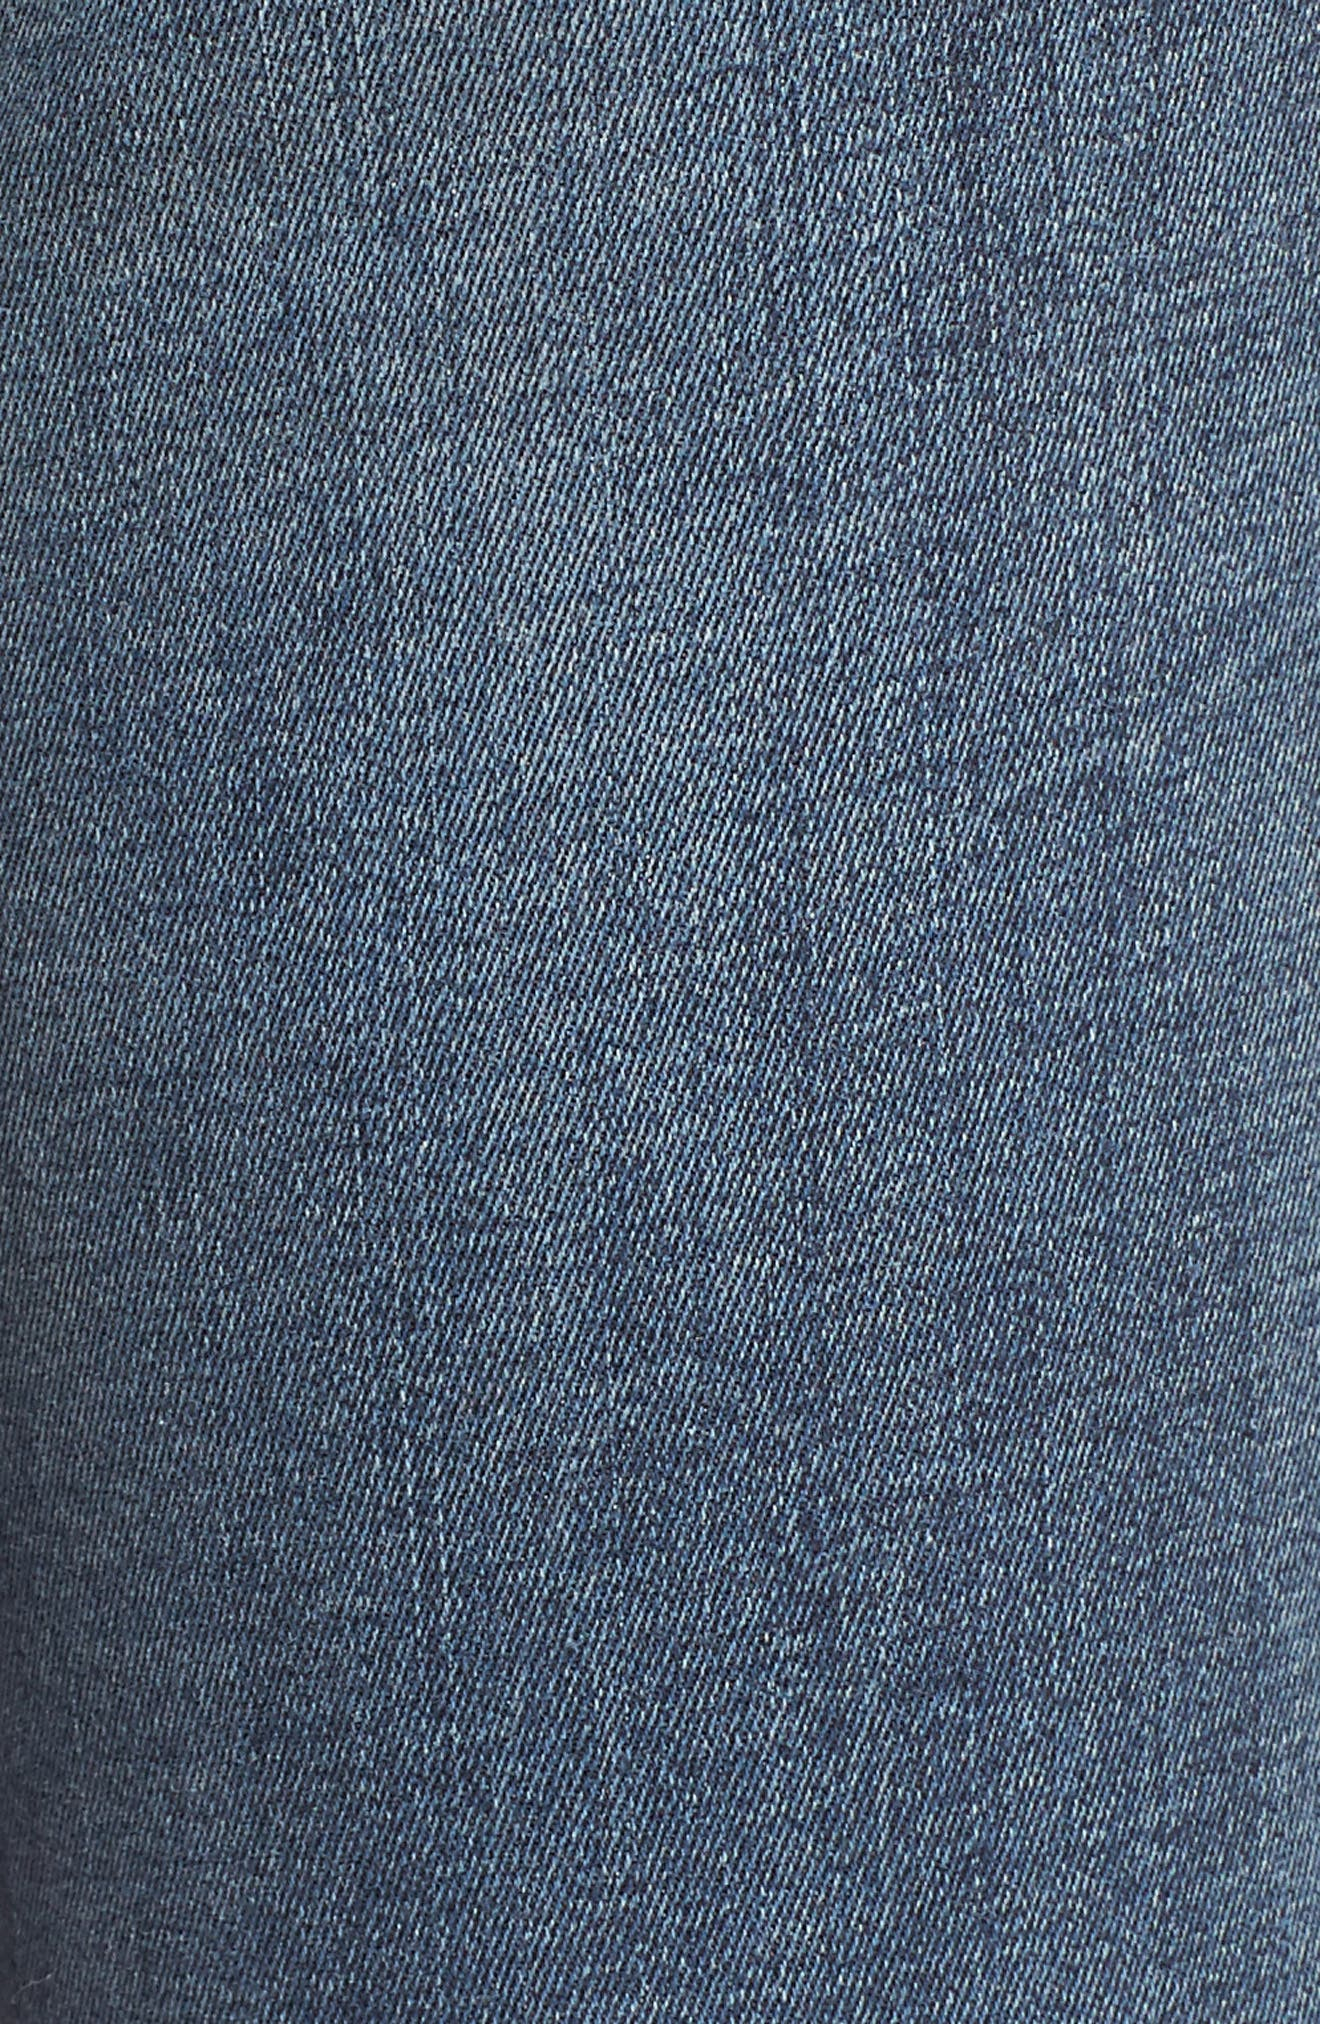 Jagger Ripped Skinny Jeans,                             Alternate thumbnail 6, color,